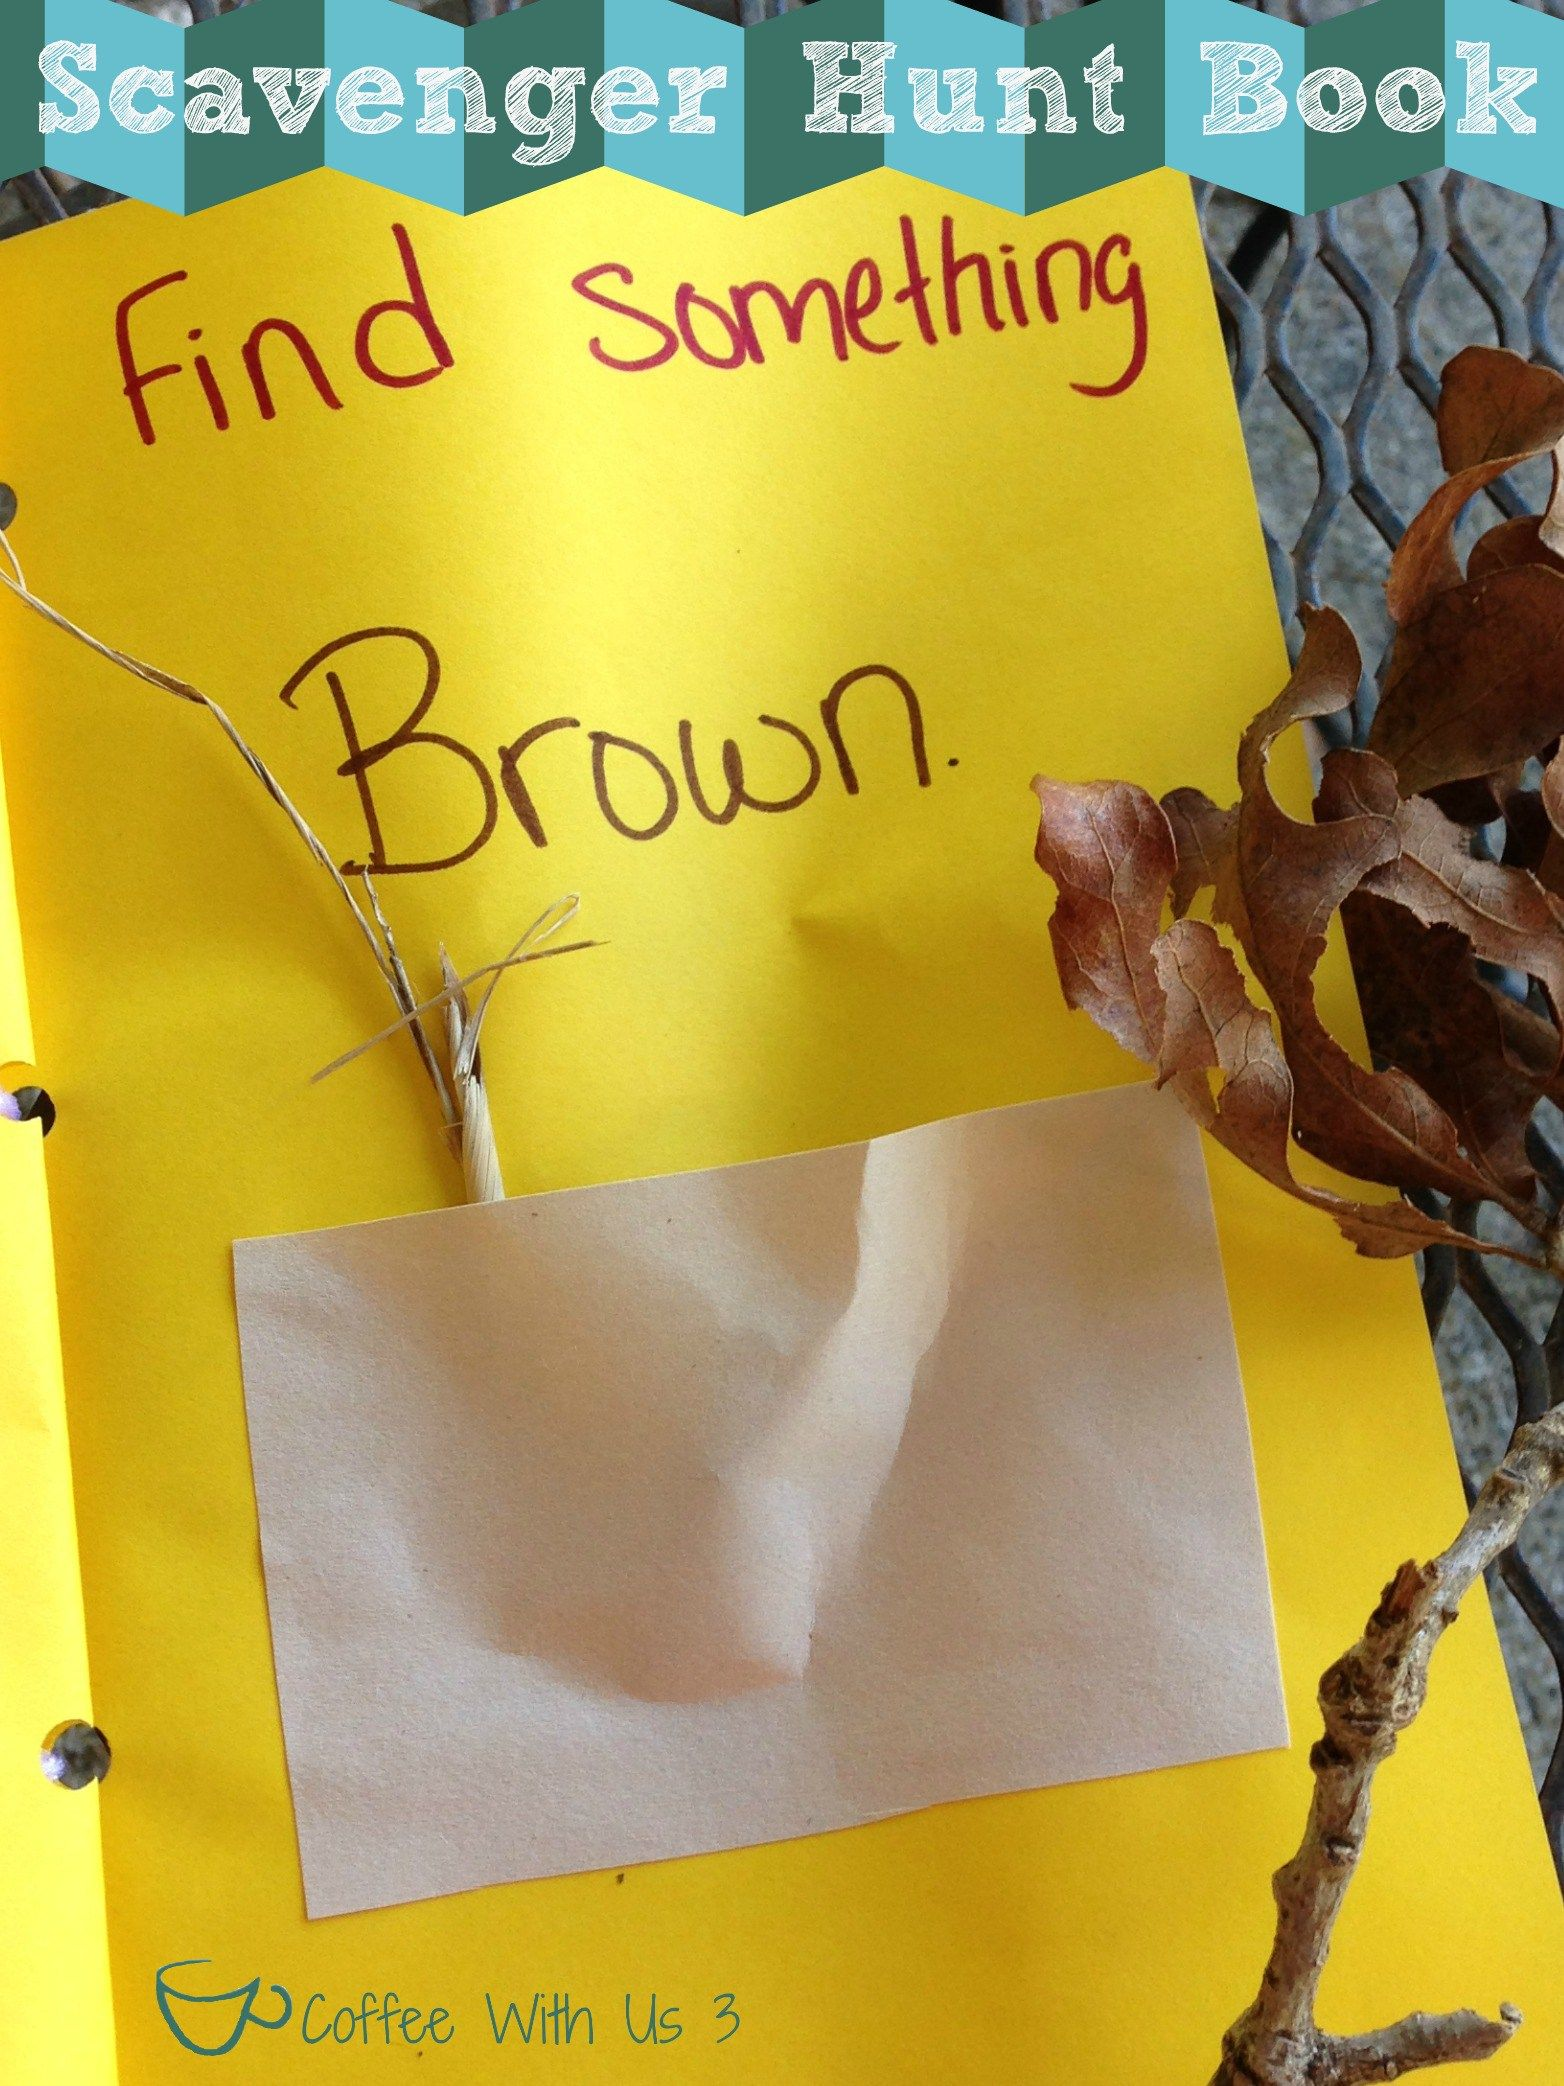 Scavenger Hunt Book by Coffee With Us 3 / DIY Pocket Books to go exploring with #kids #crafts